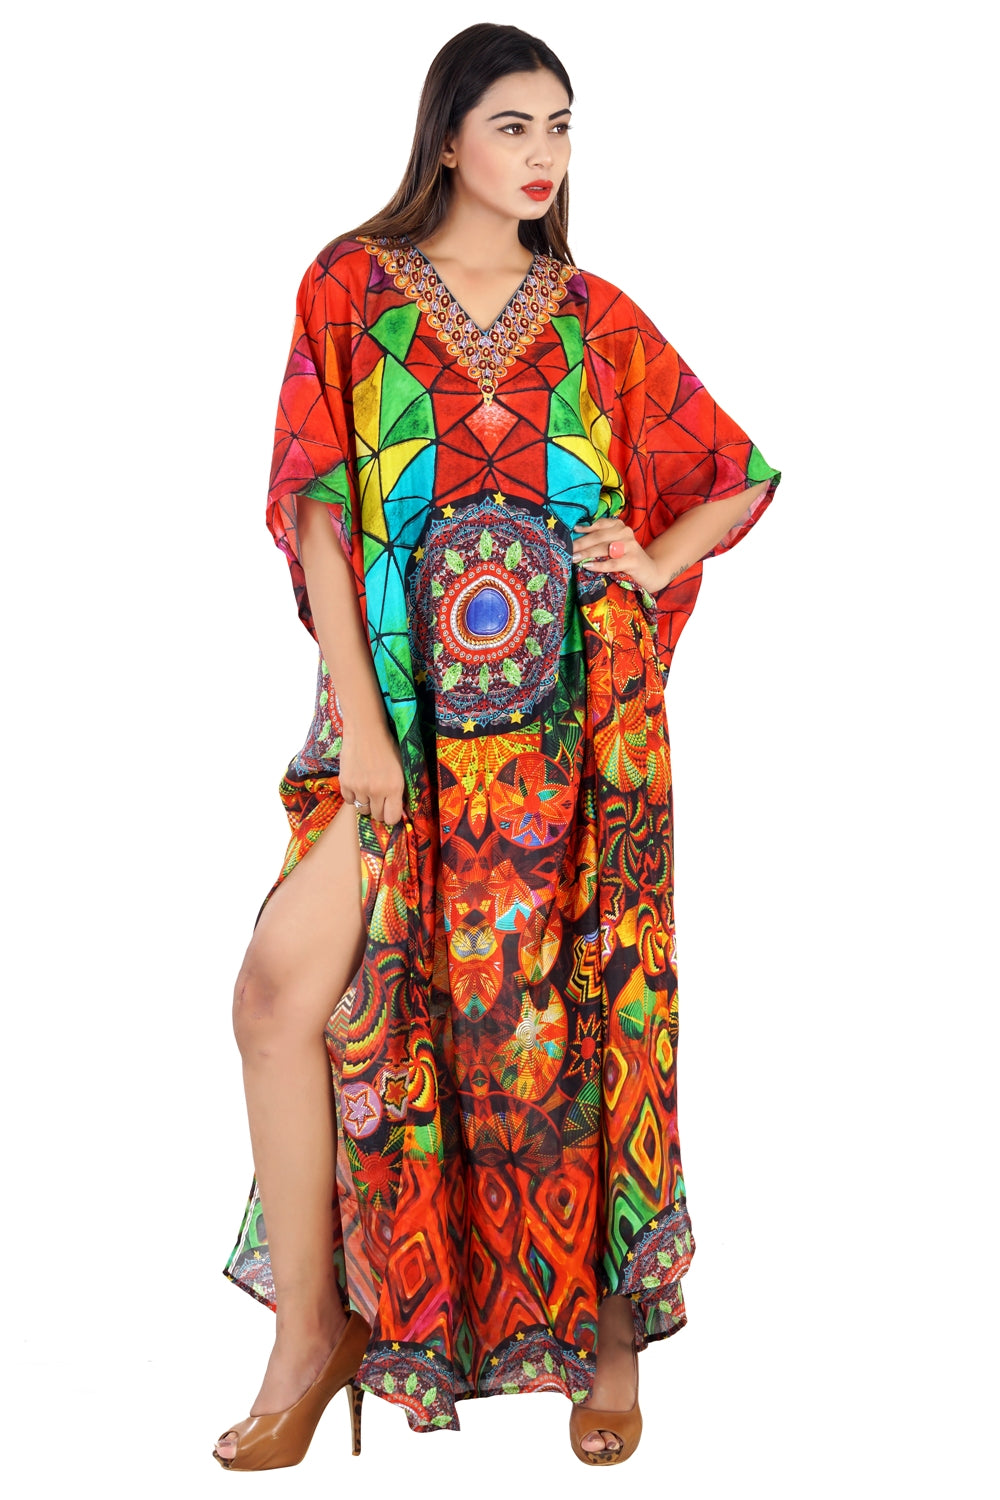 Feel the thrift with Baleares Print of Long Silk Kaftan Maxi Style with Cuts at the Side - Silk kaftan